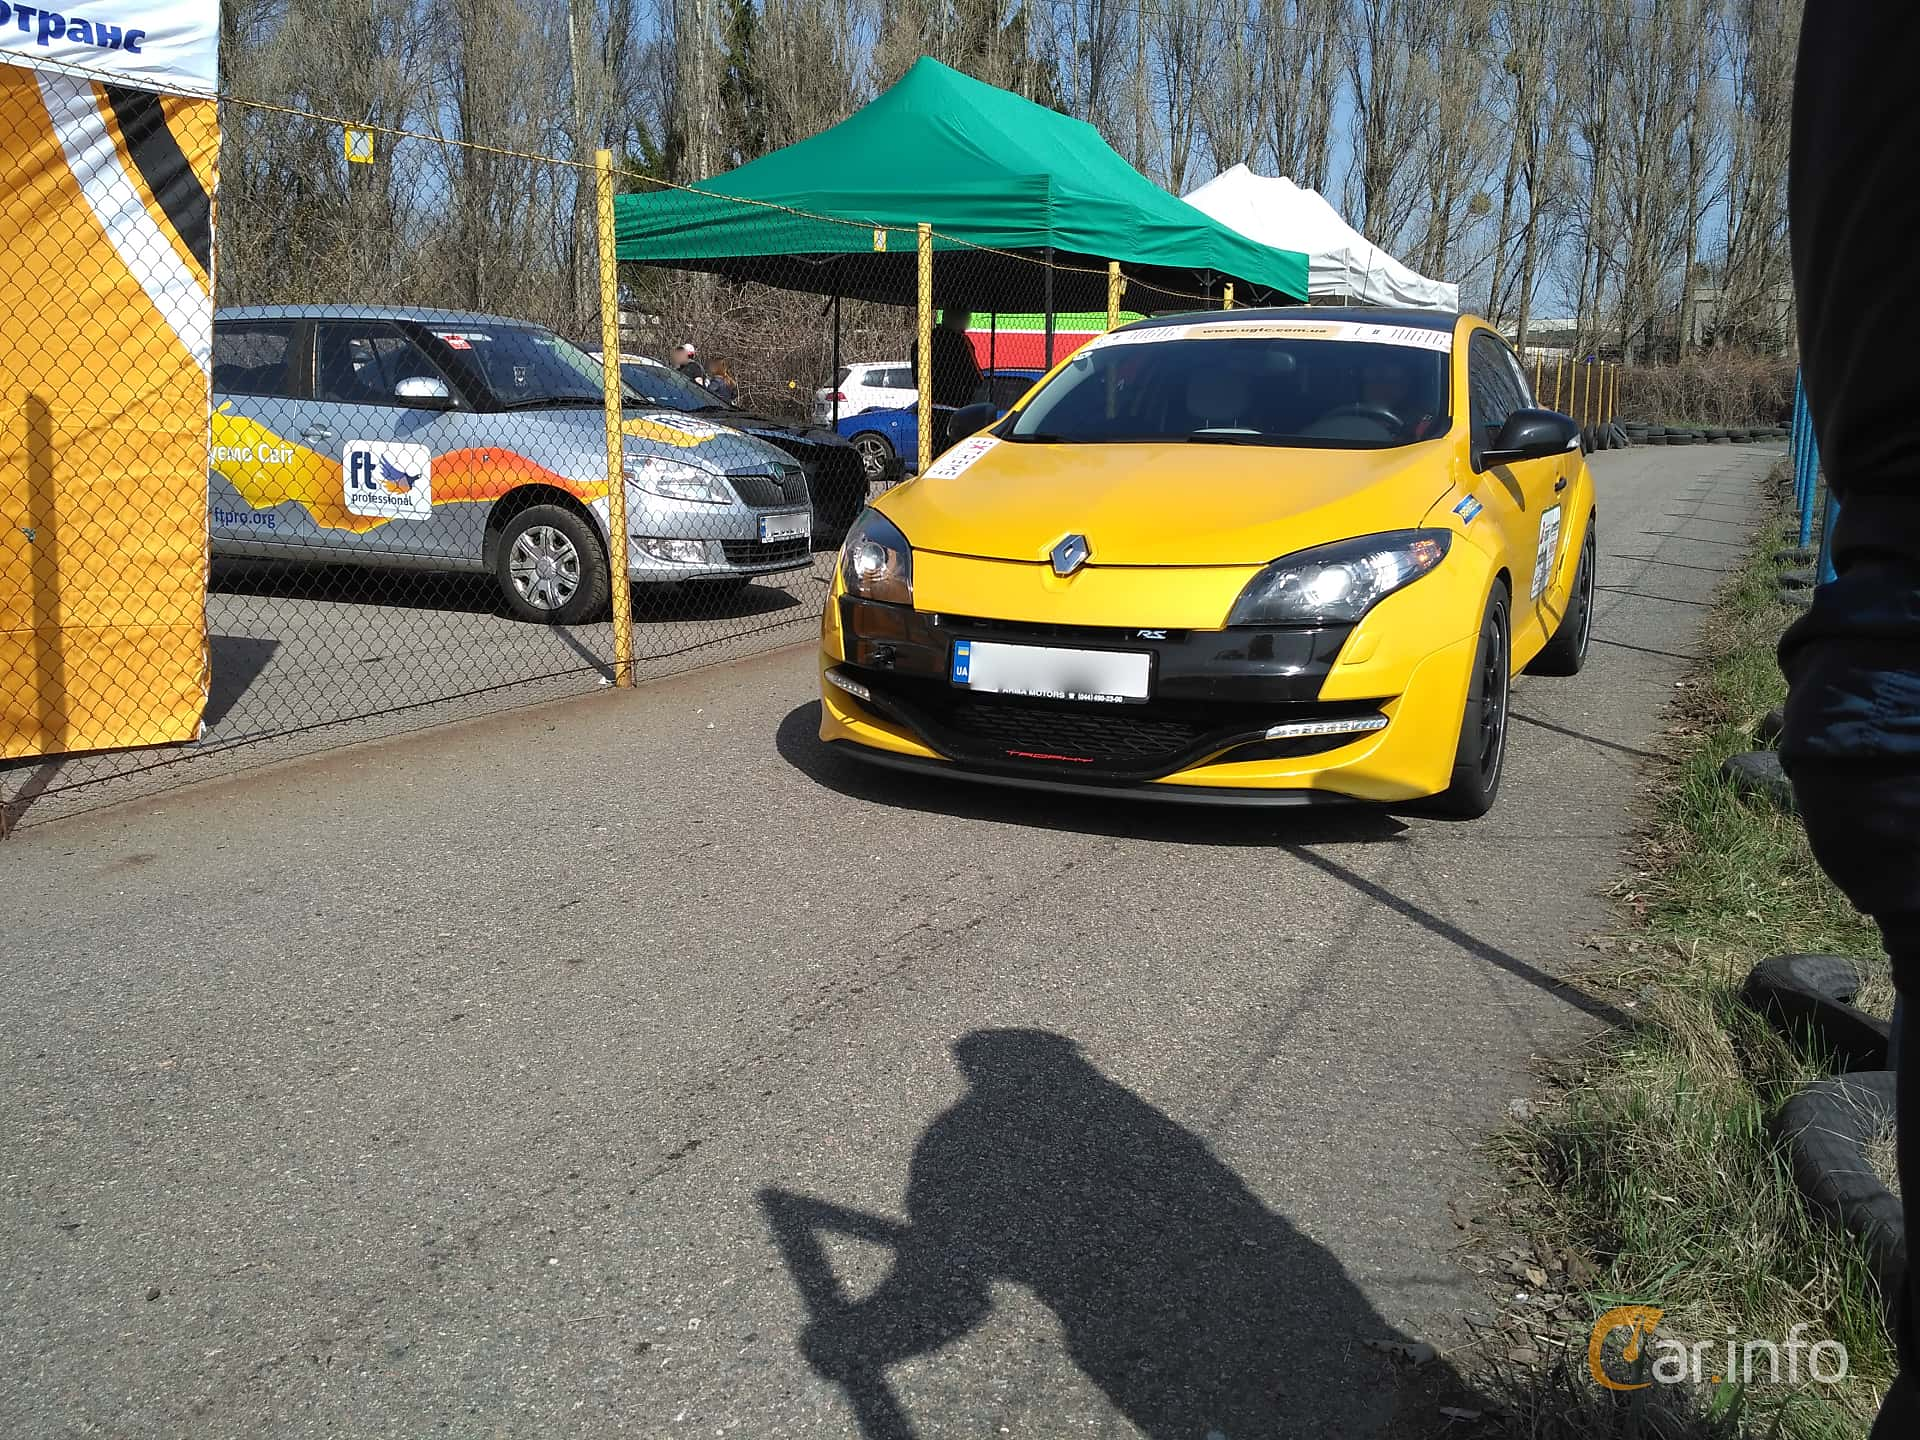 Renault Mégane RS 2.0 TCe Manuell, 265hk, 2012 at Ltava Time Attack 1st Stage